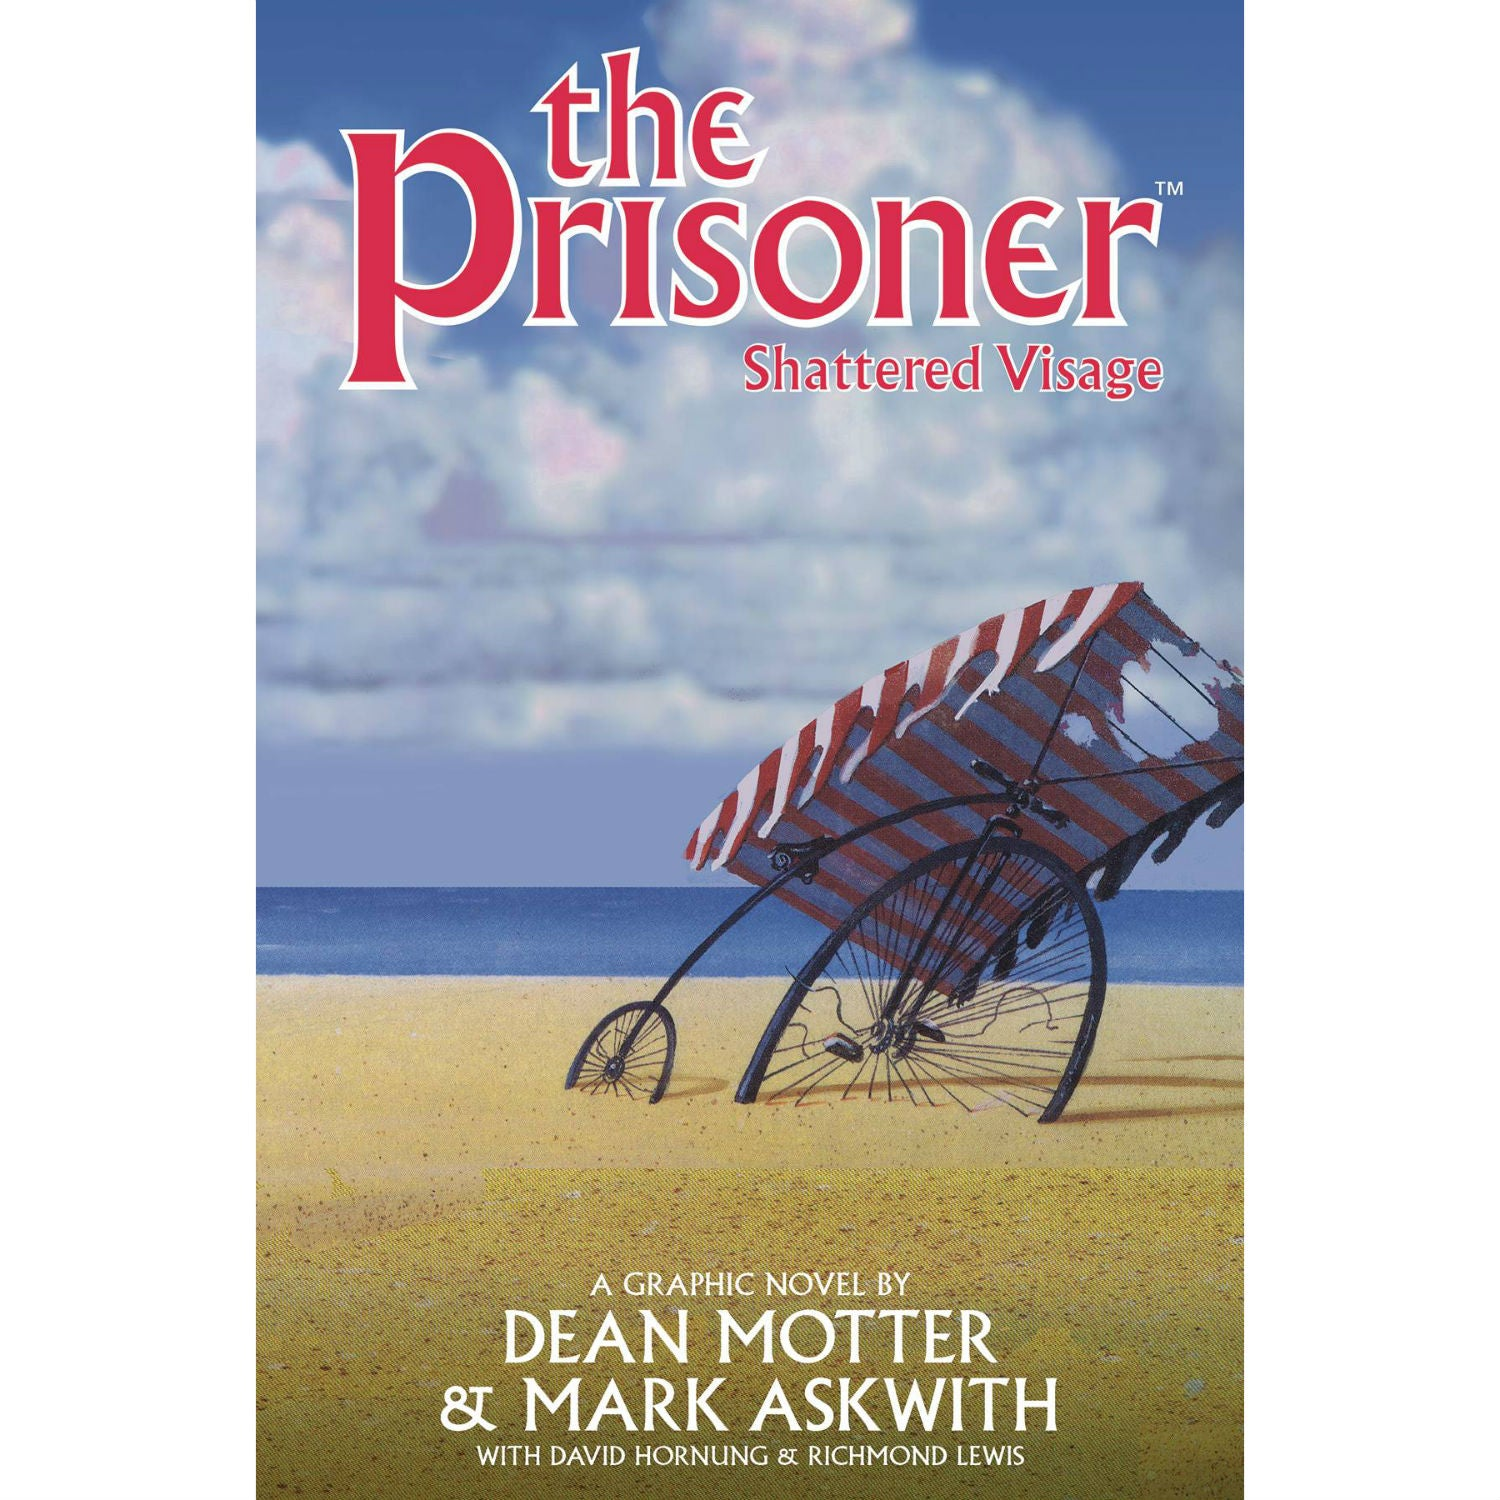 The Prisoner Vol. 2